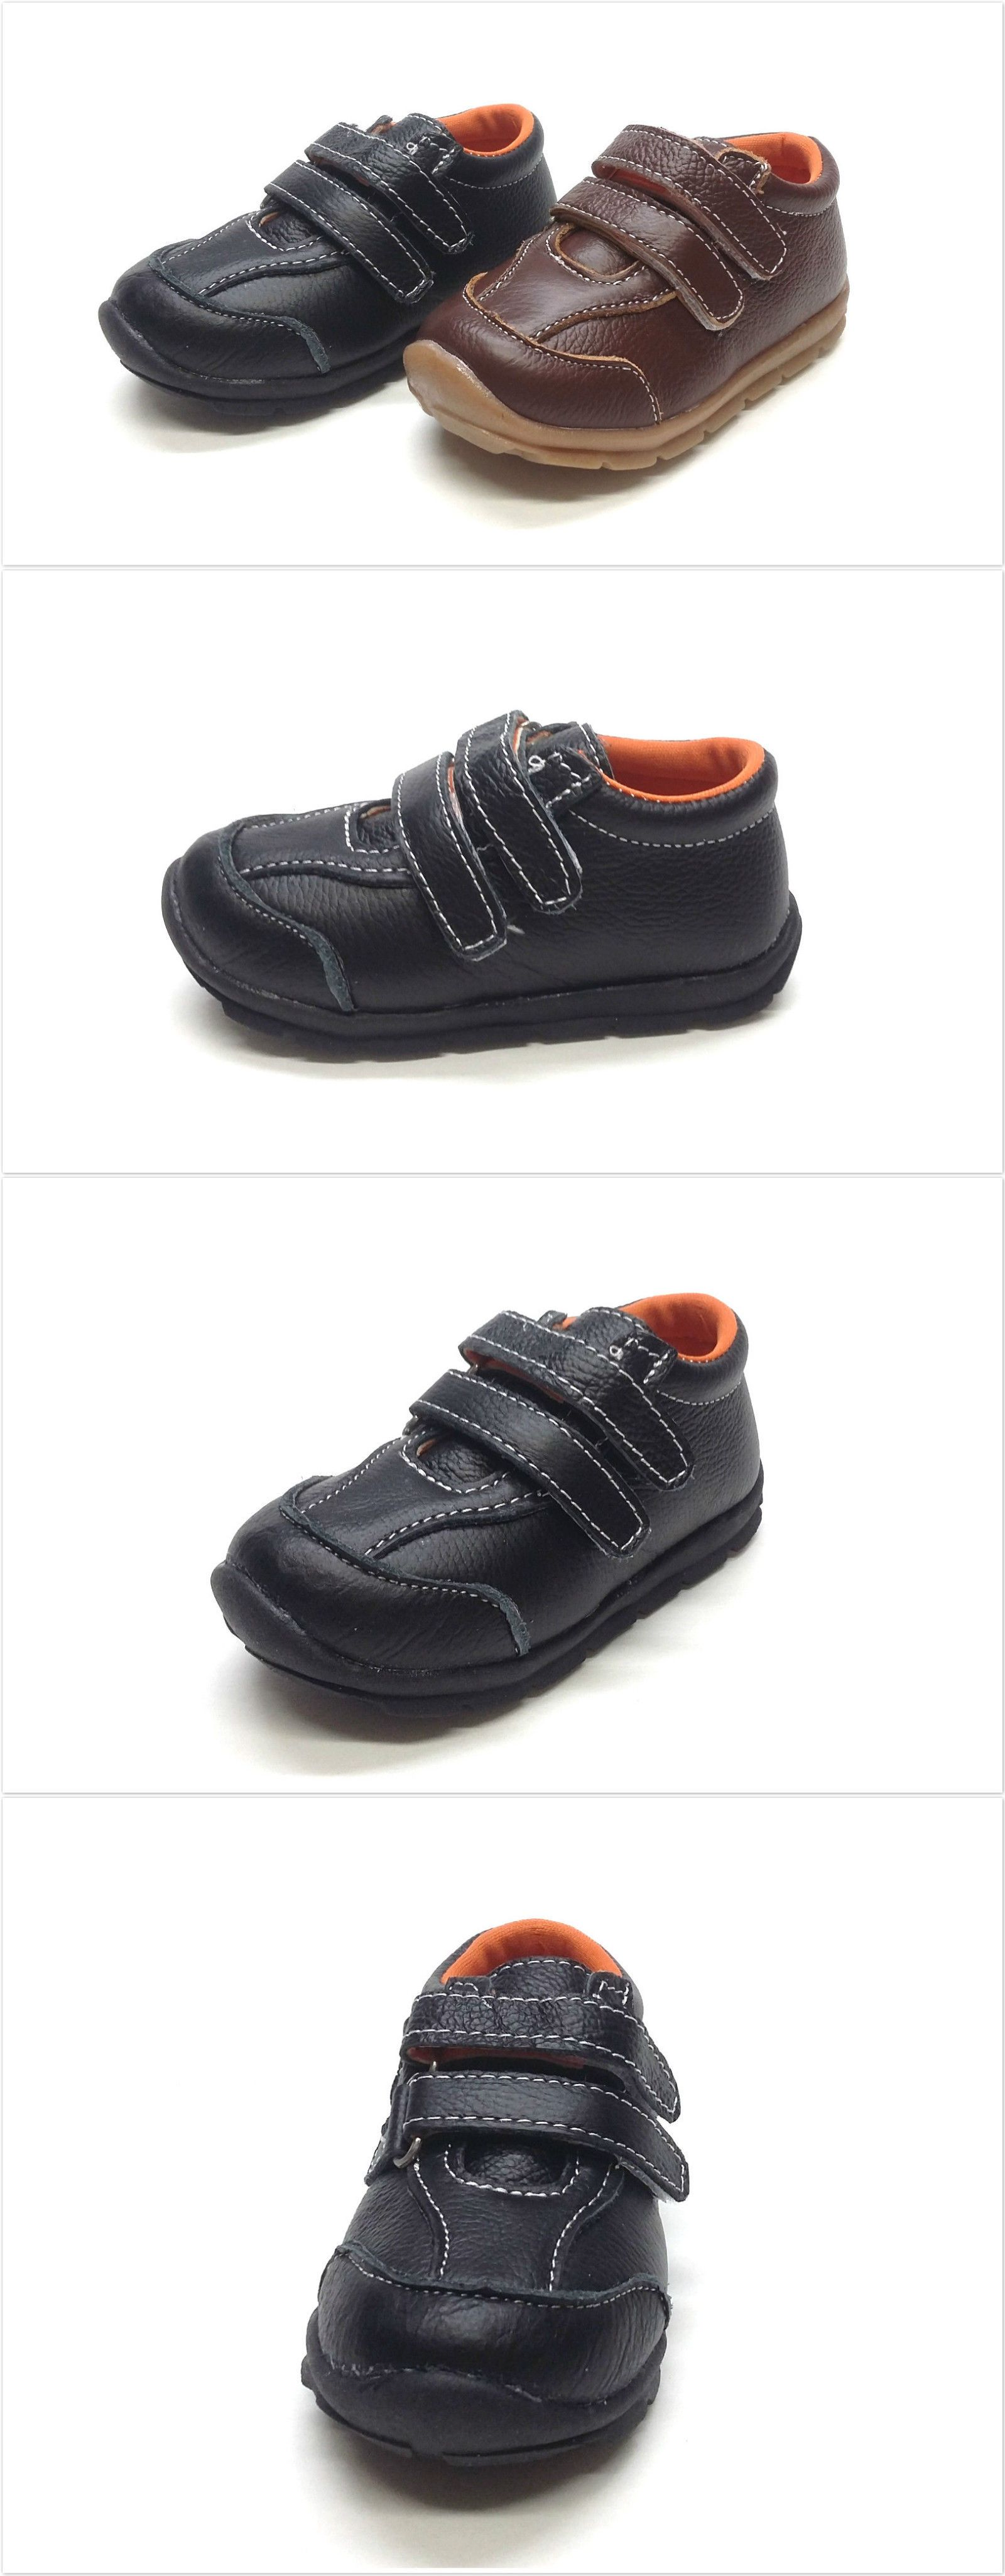 Baby Boy Shoes Nib Genuine Leather Infant Toddler Boy Sporty Shoes